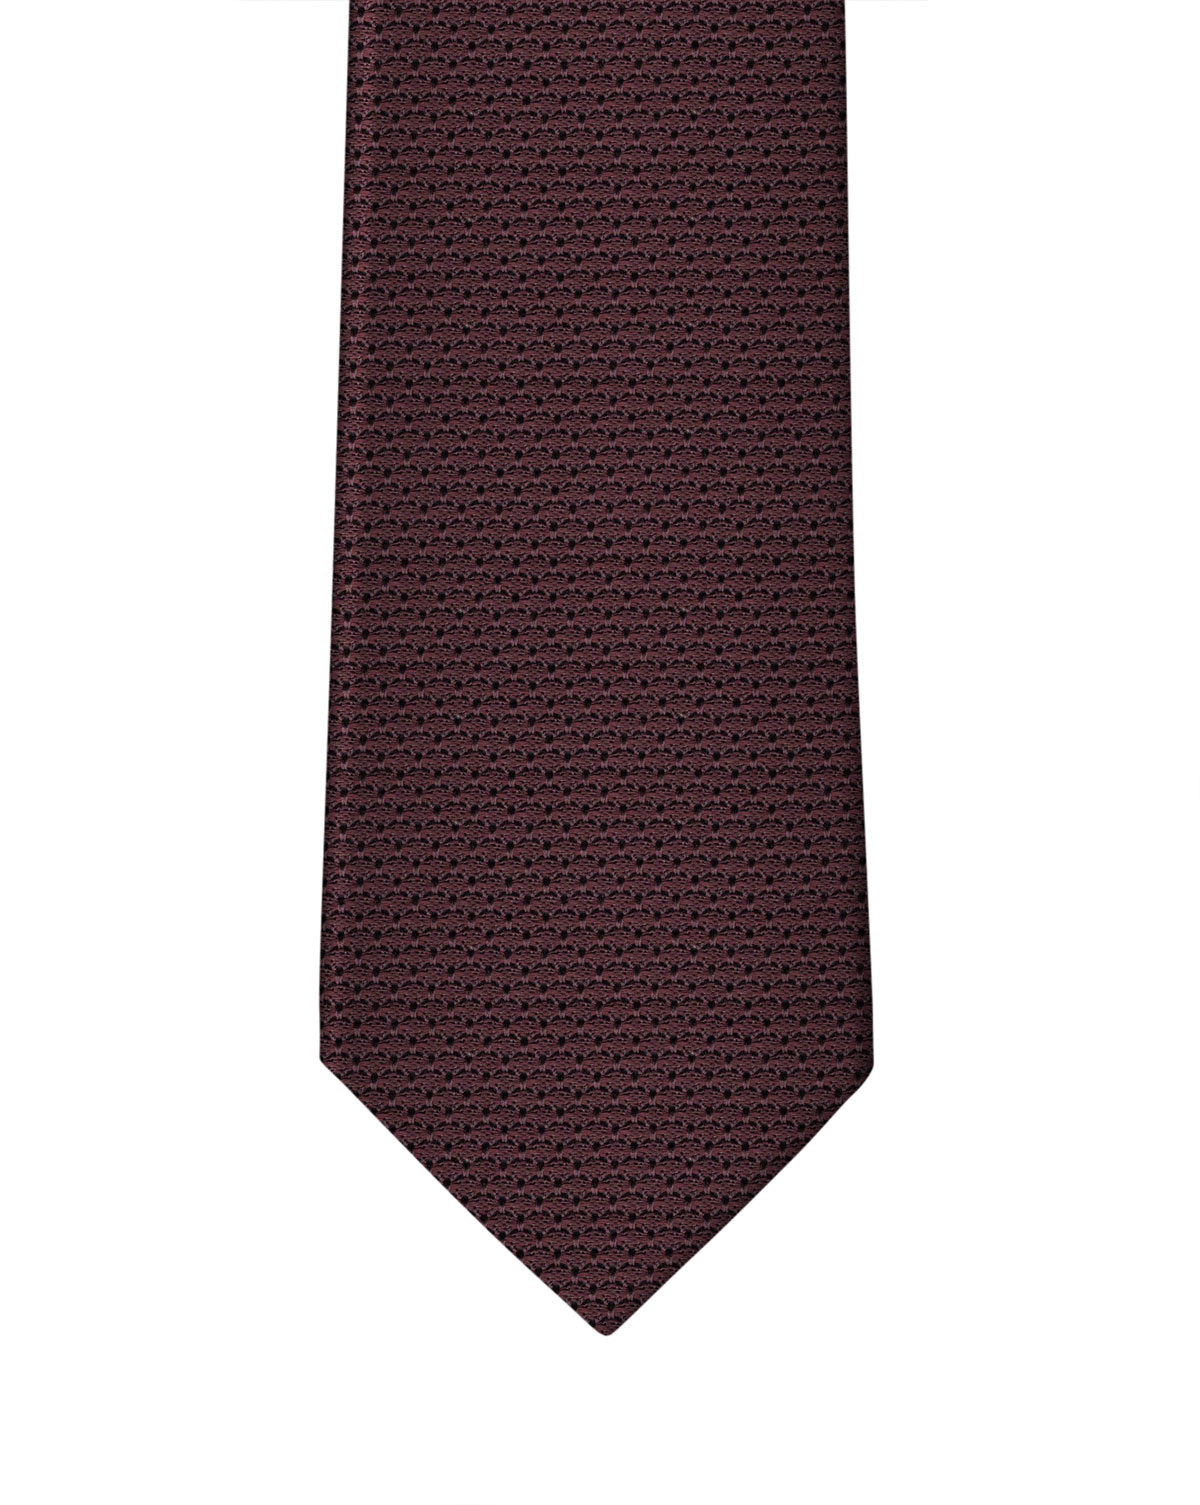 Wine Grenadine Necktie